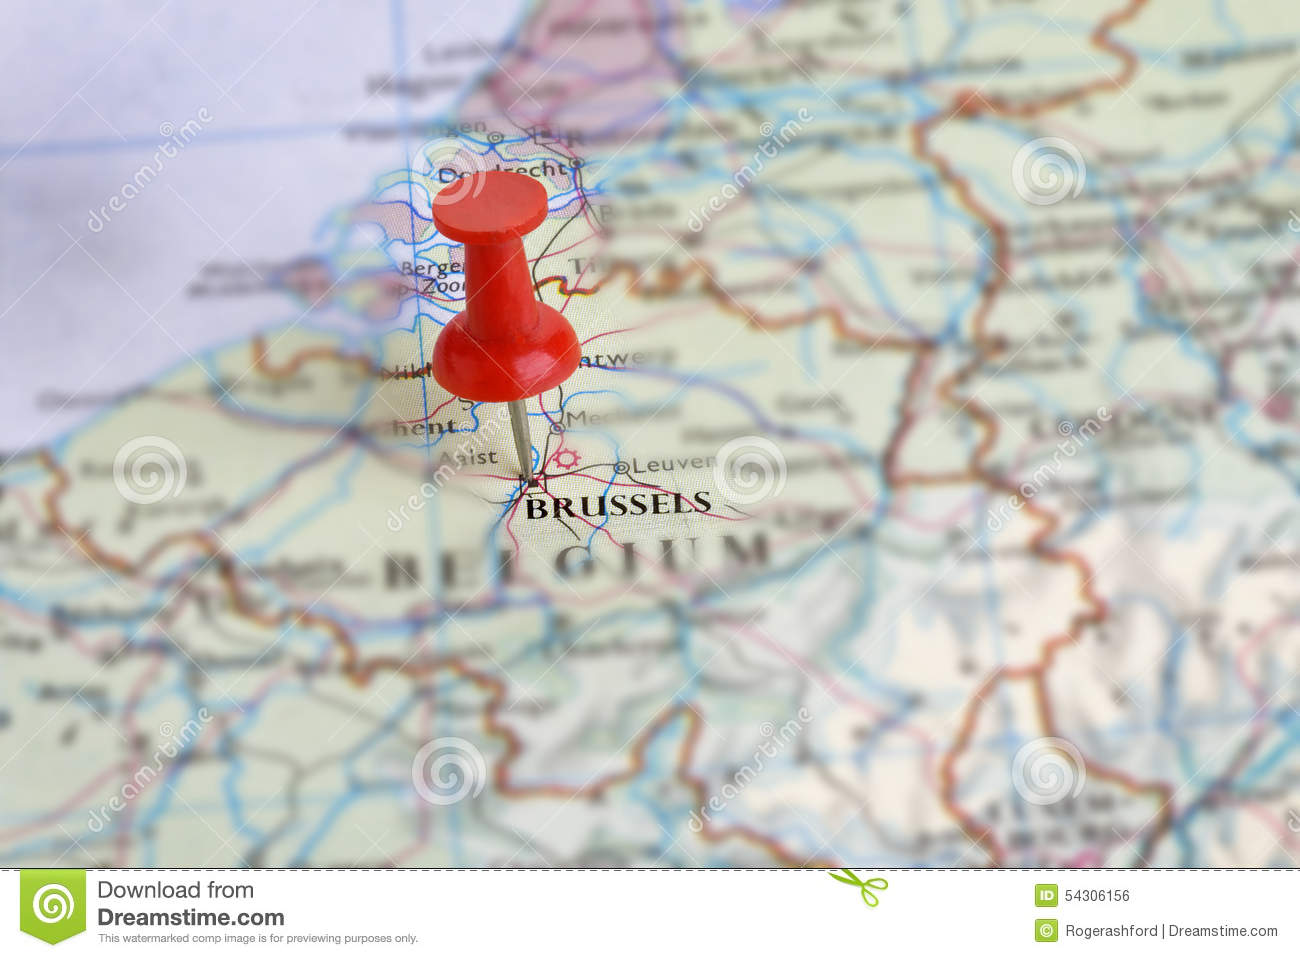 BrusselsBelgium On A Map Stock Photo Image - Brussels belgium map